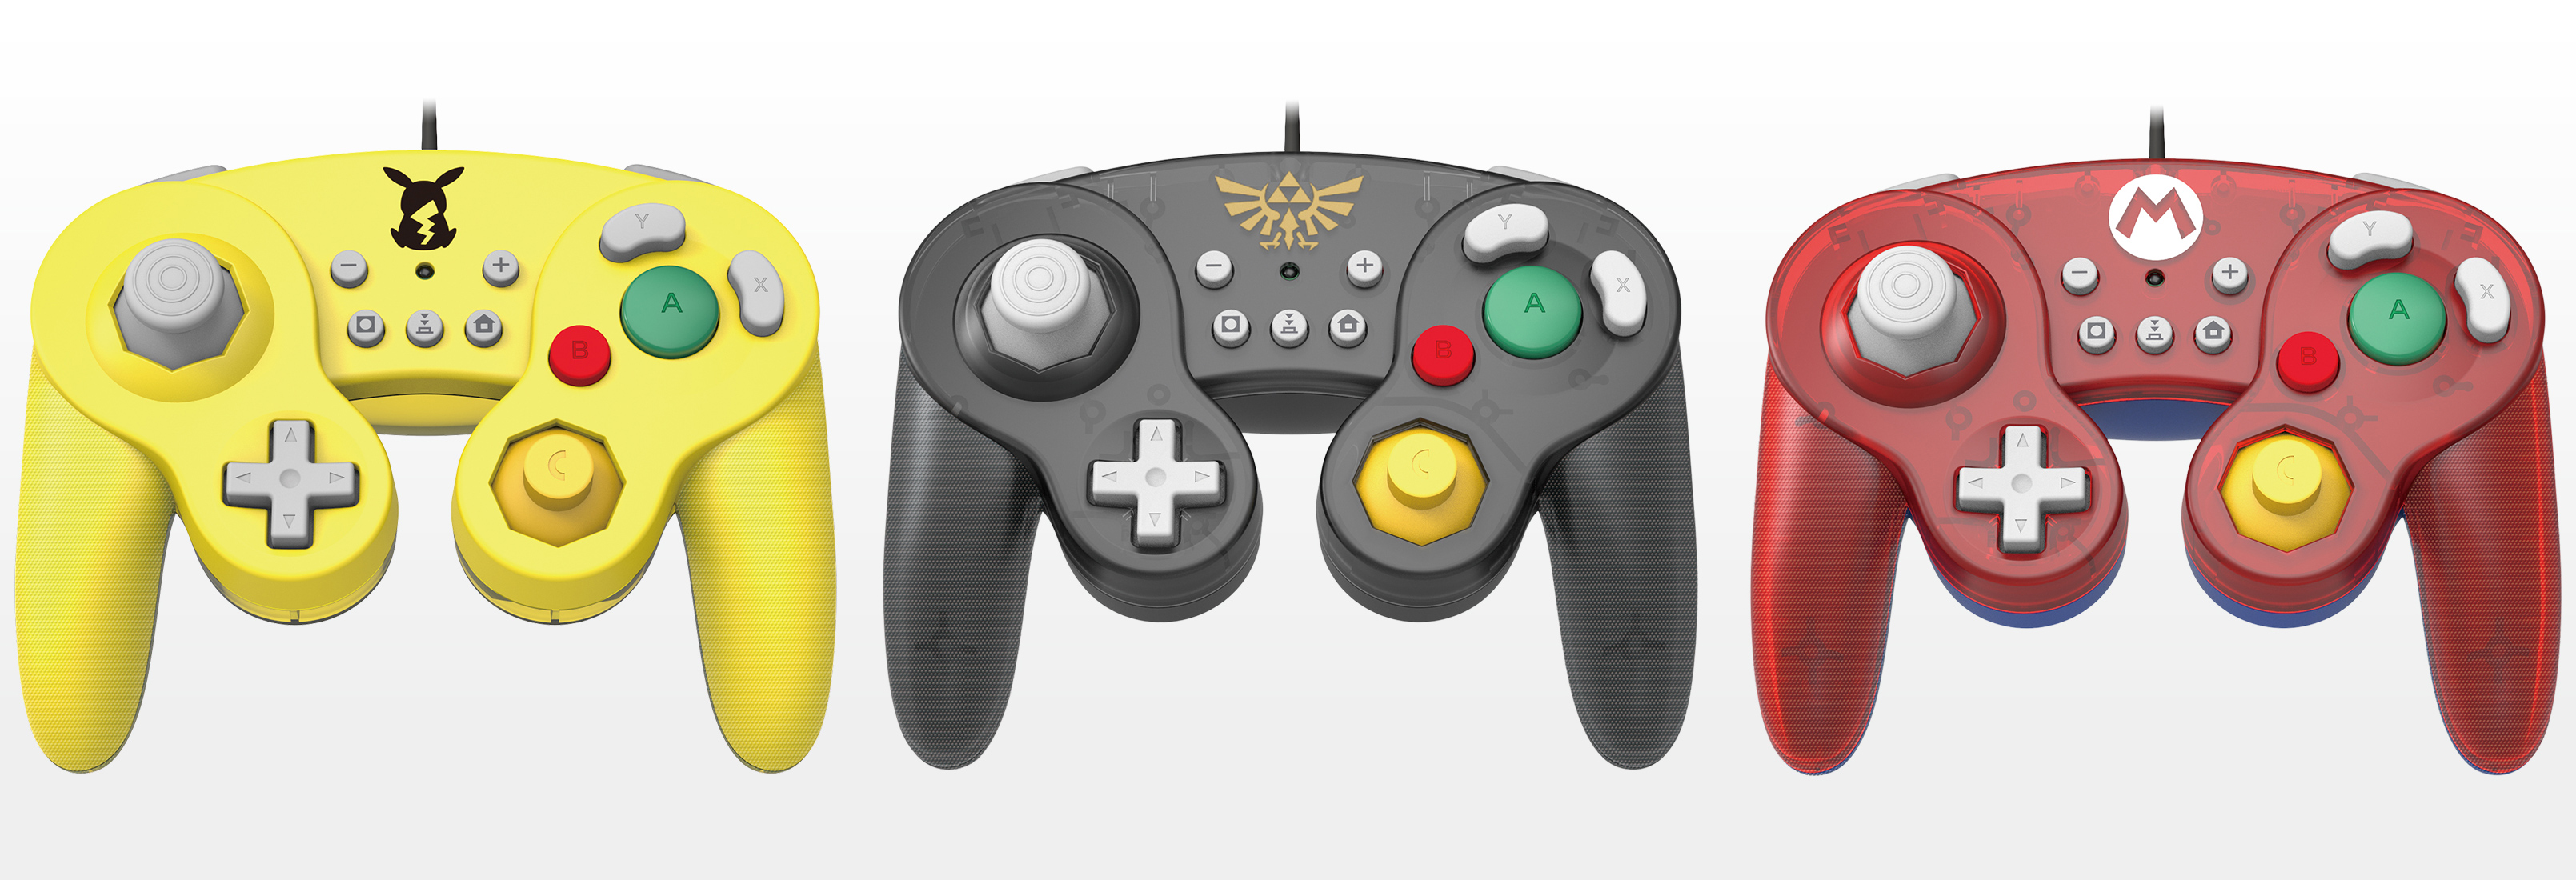 Nintendo Switch is getting three GameCube-style controllers from Hori screenshot